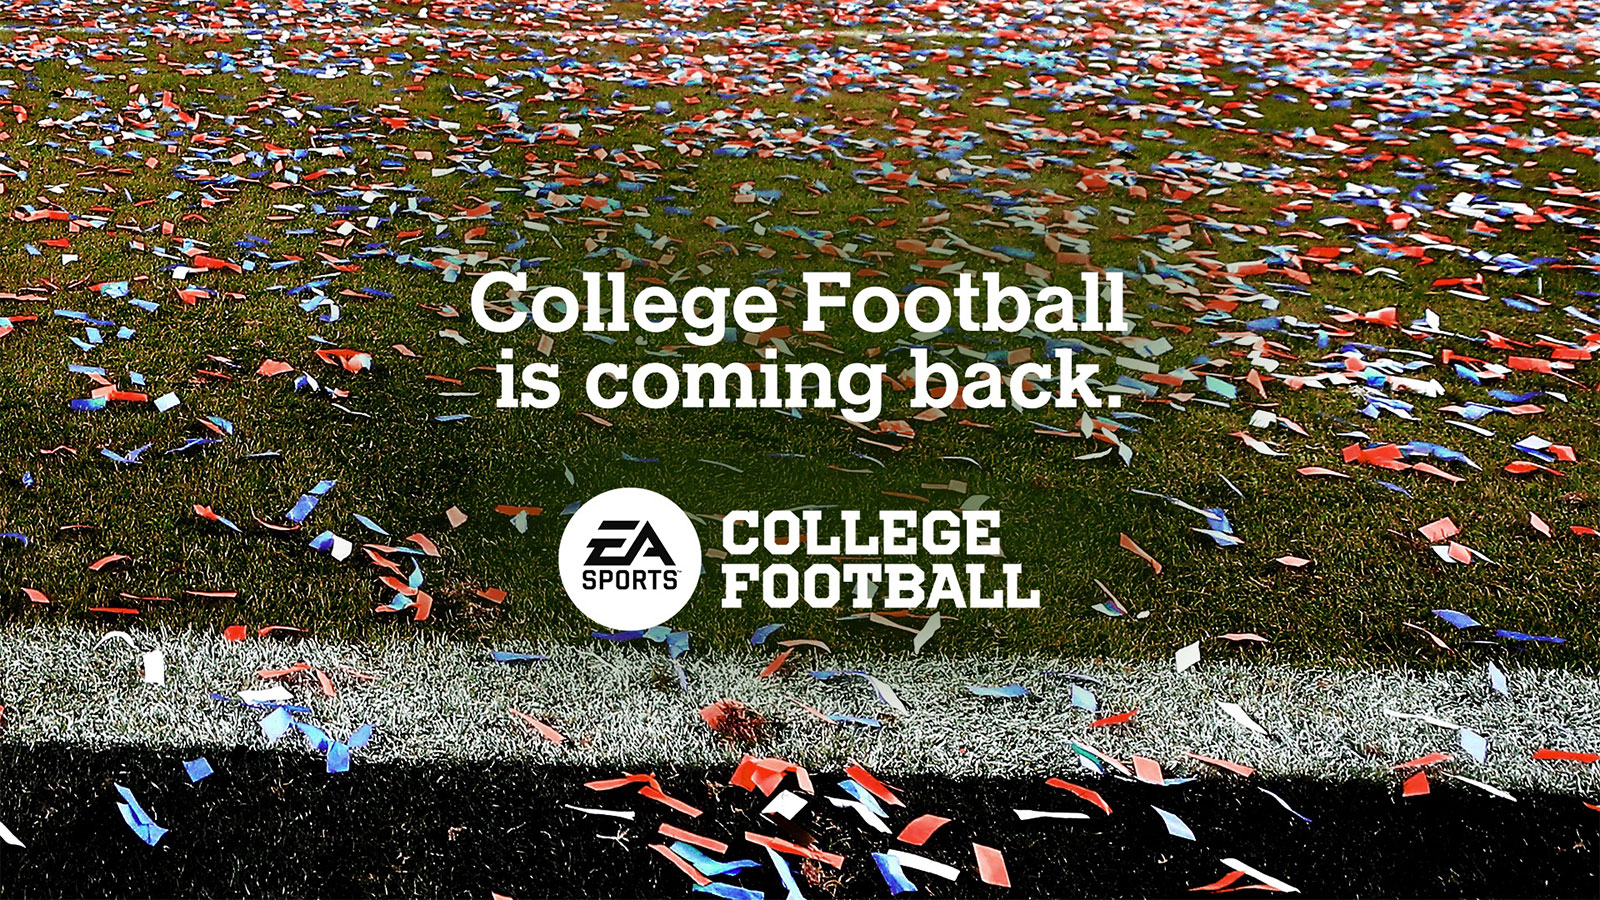 EA Sports College Football